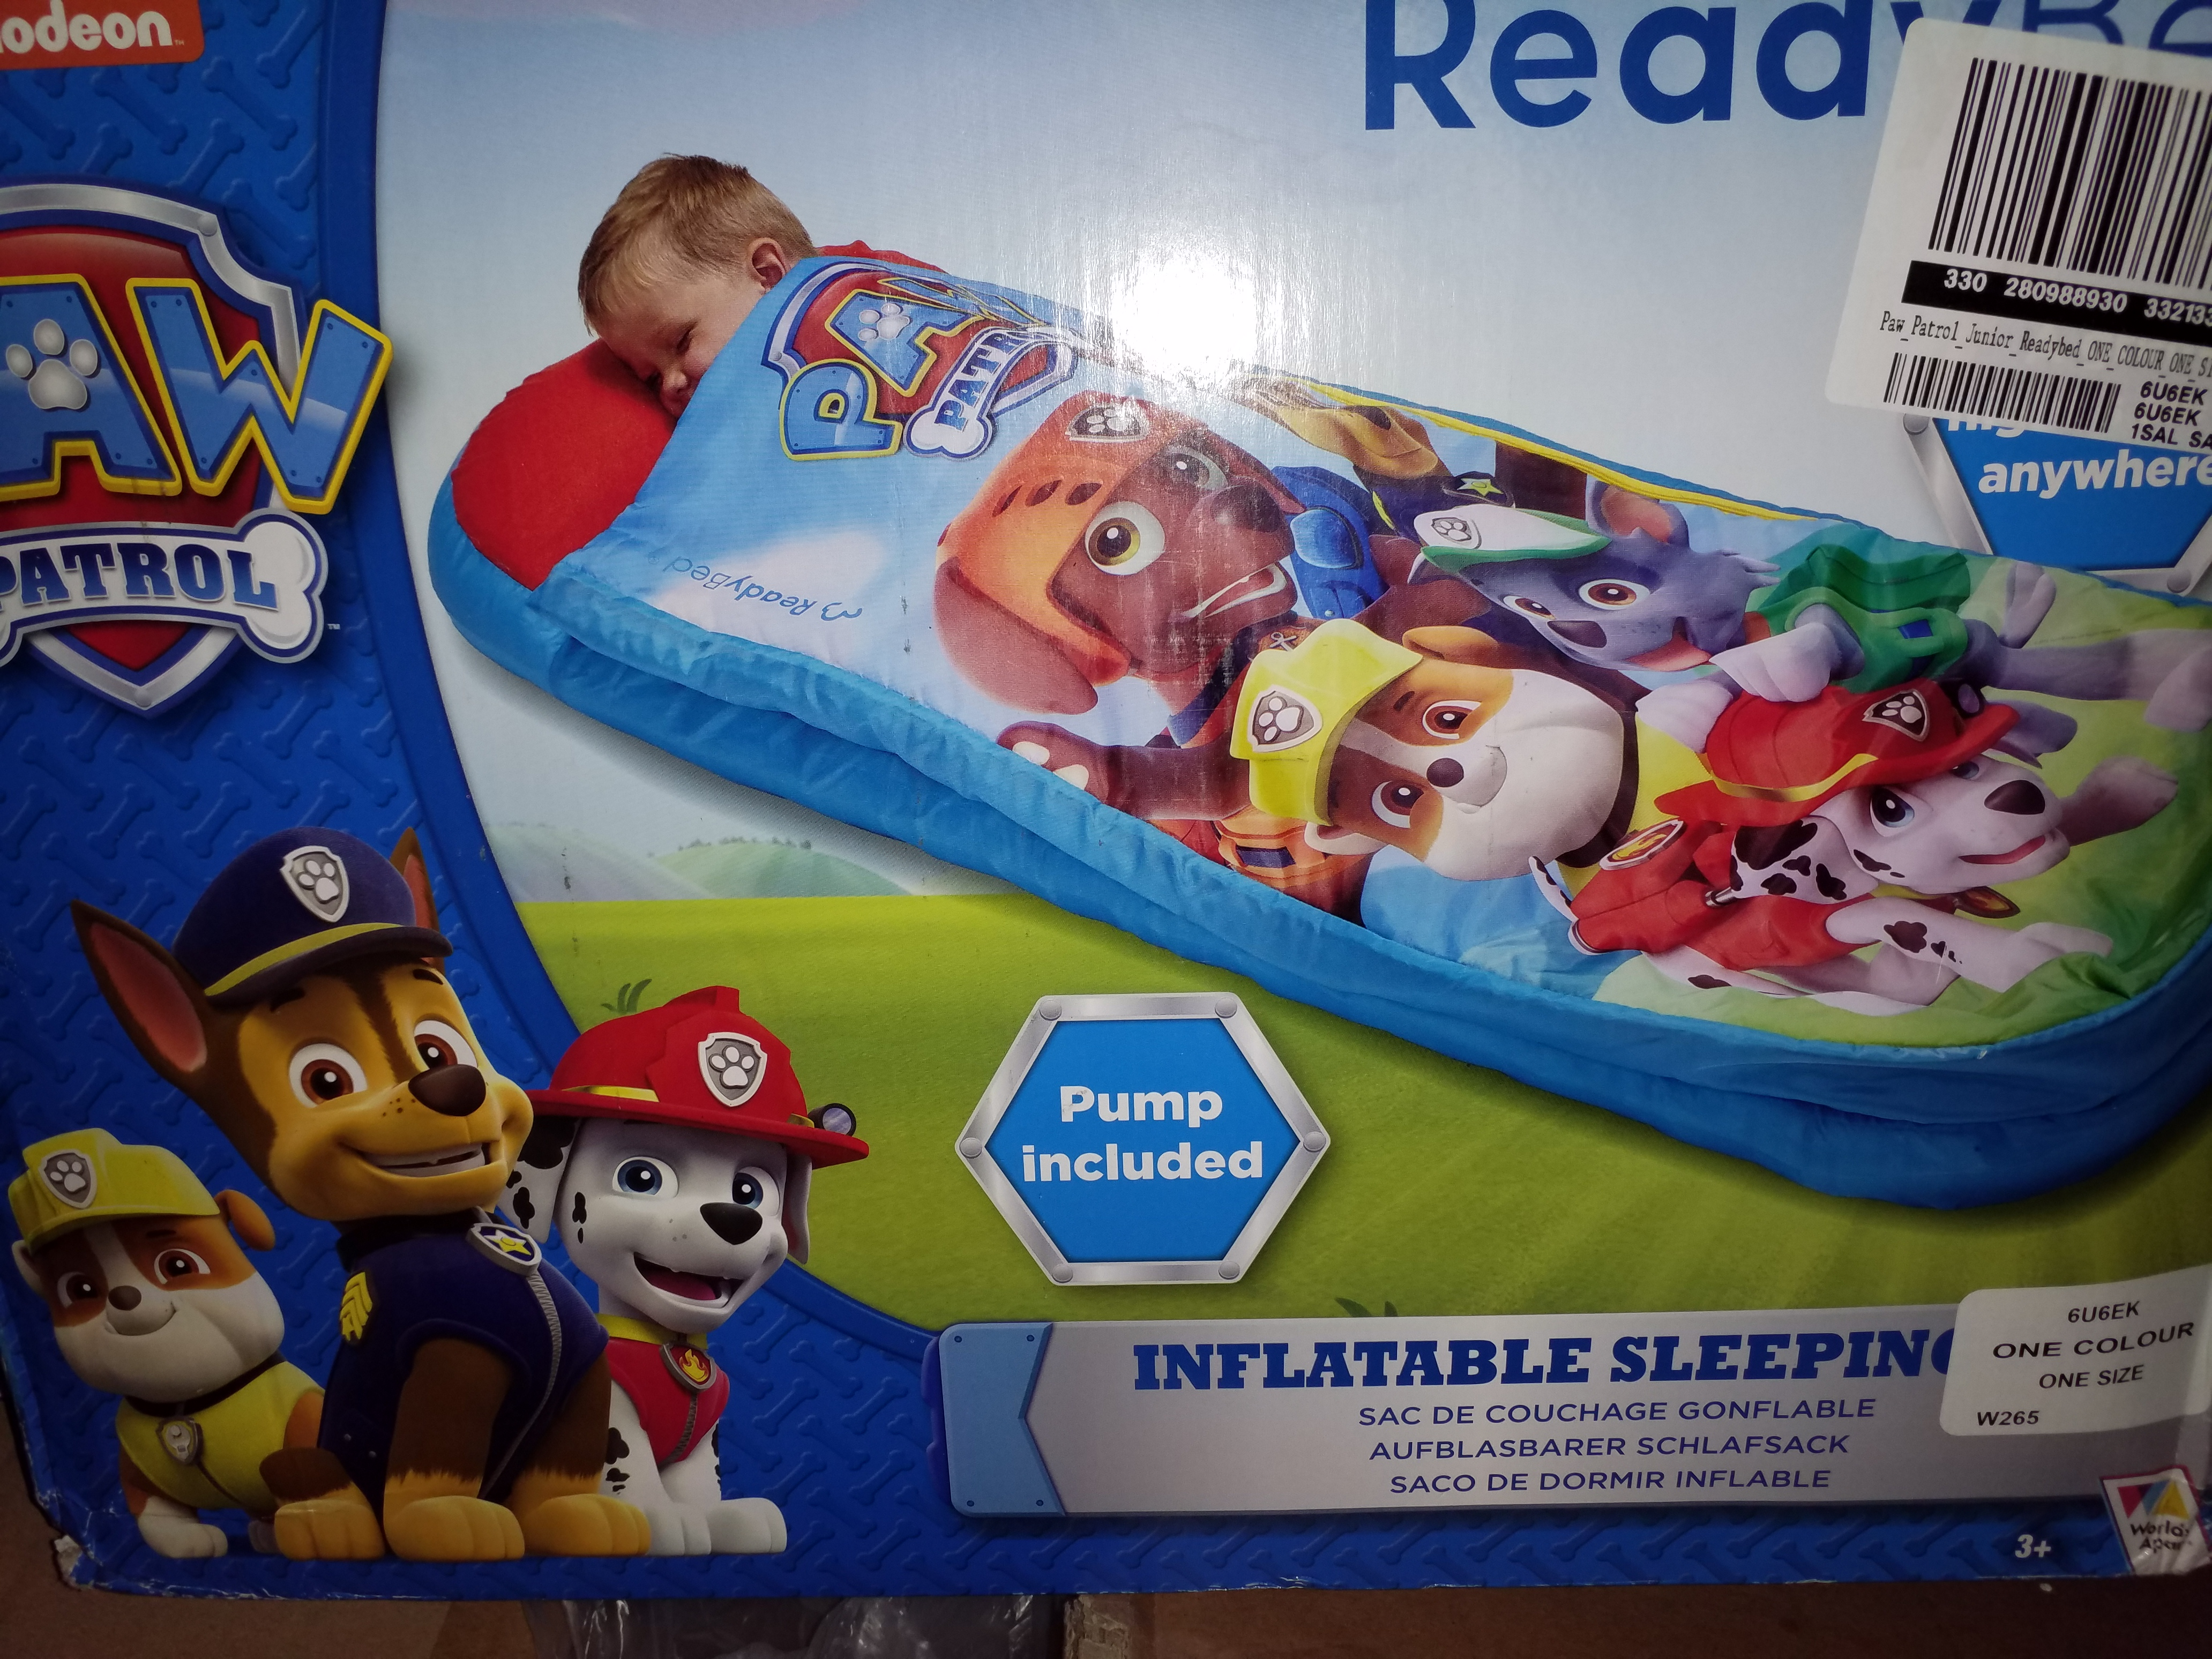 Lot 11036: BOXED PAW PATROL JUNIOR READY BED (1 BOX) AND